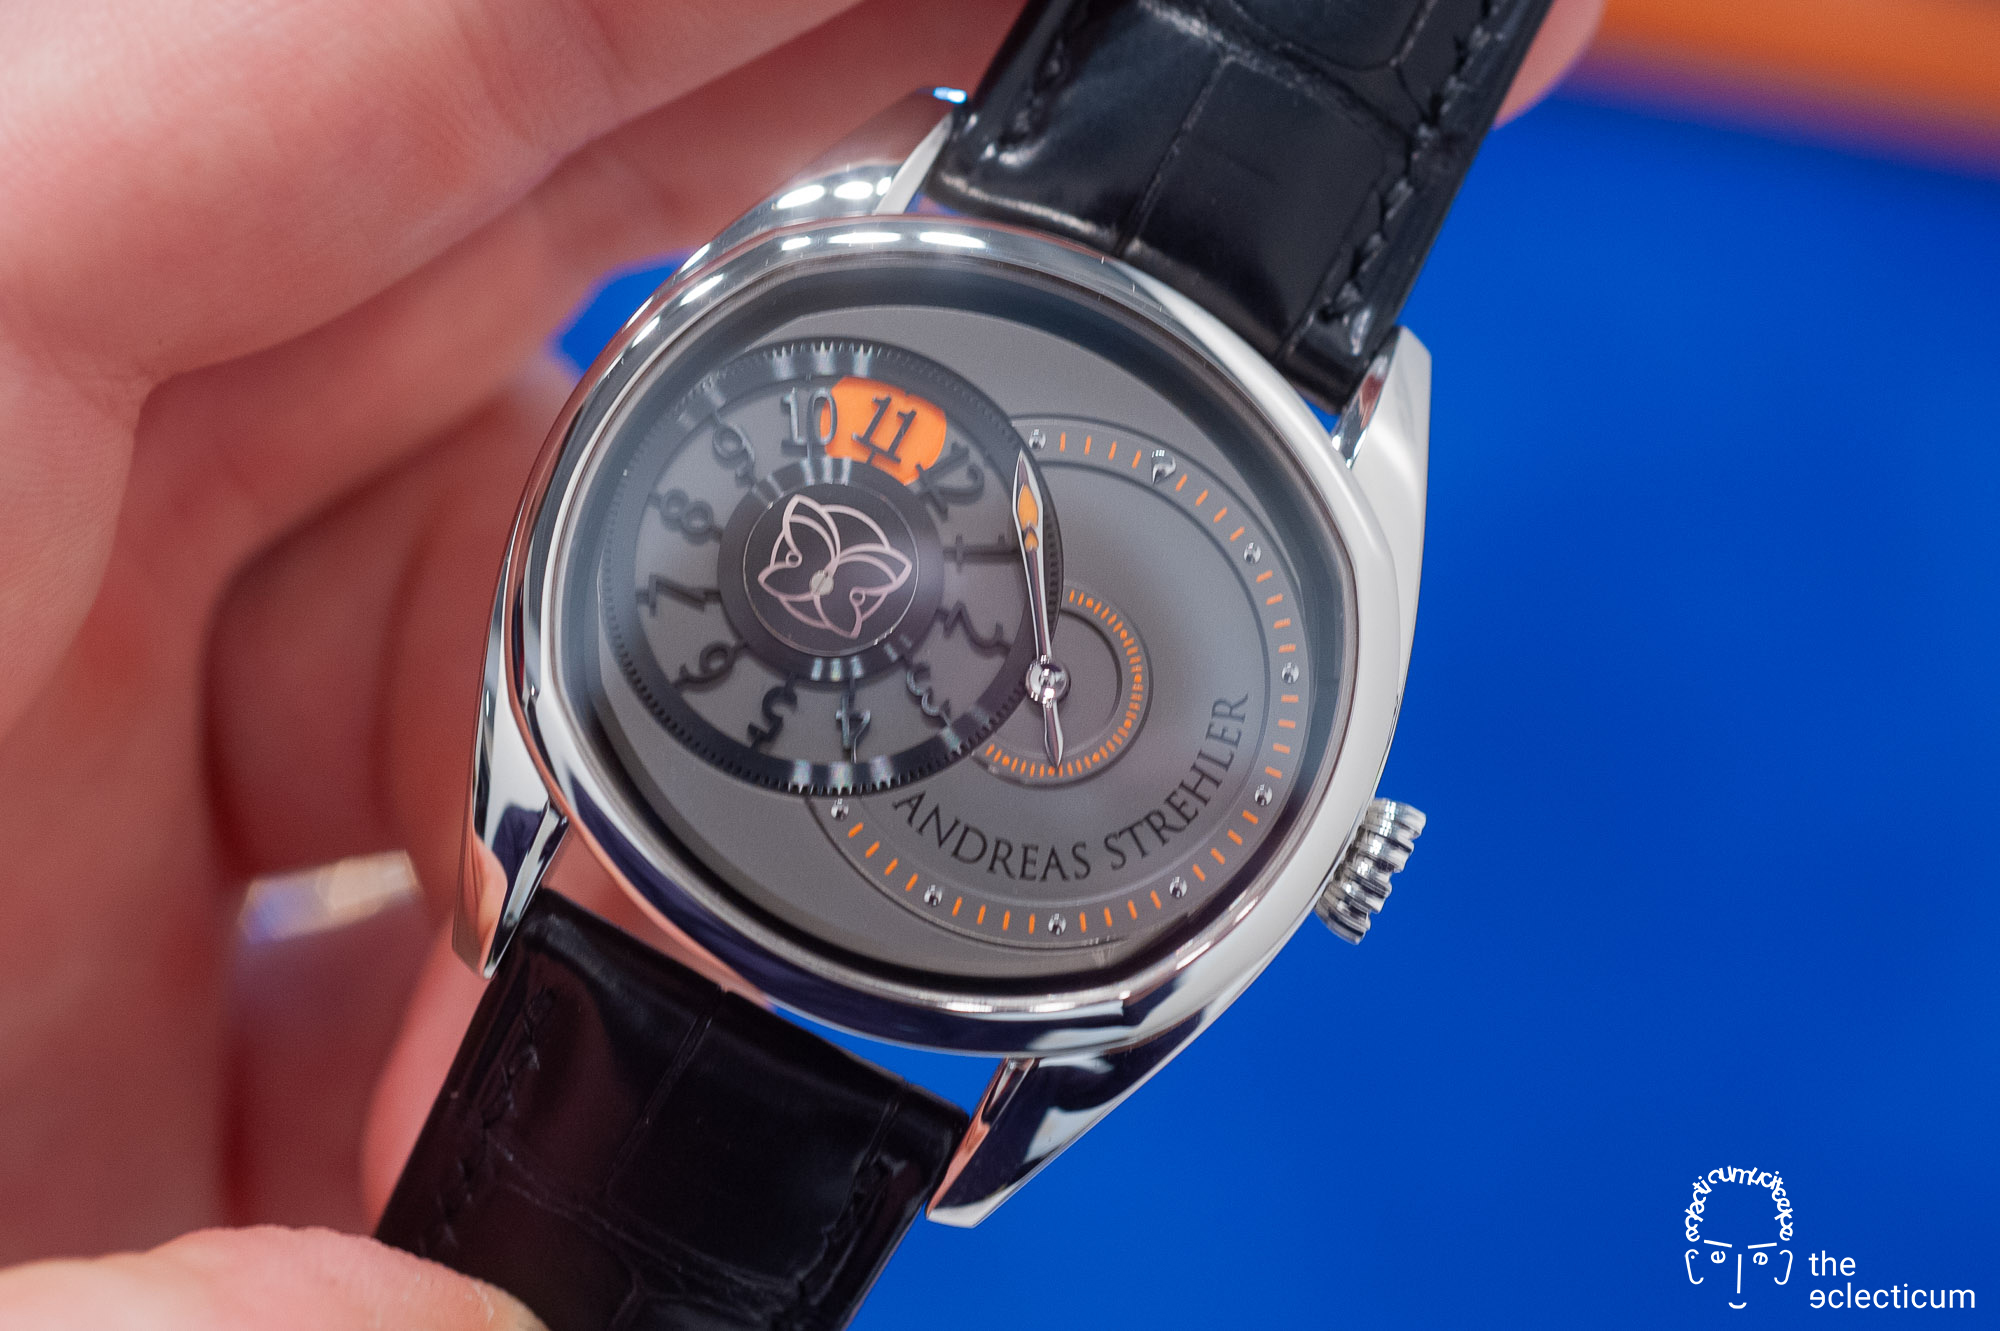 Andreas Strehler Time Shadow hands on